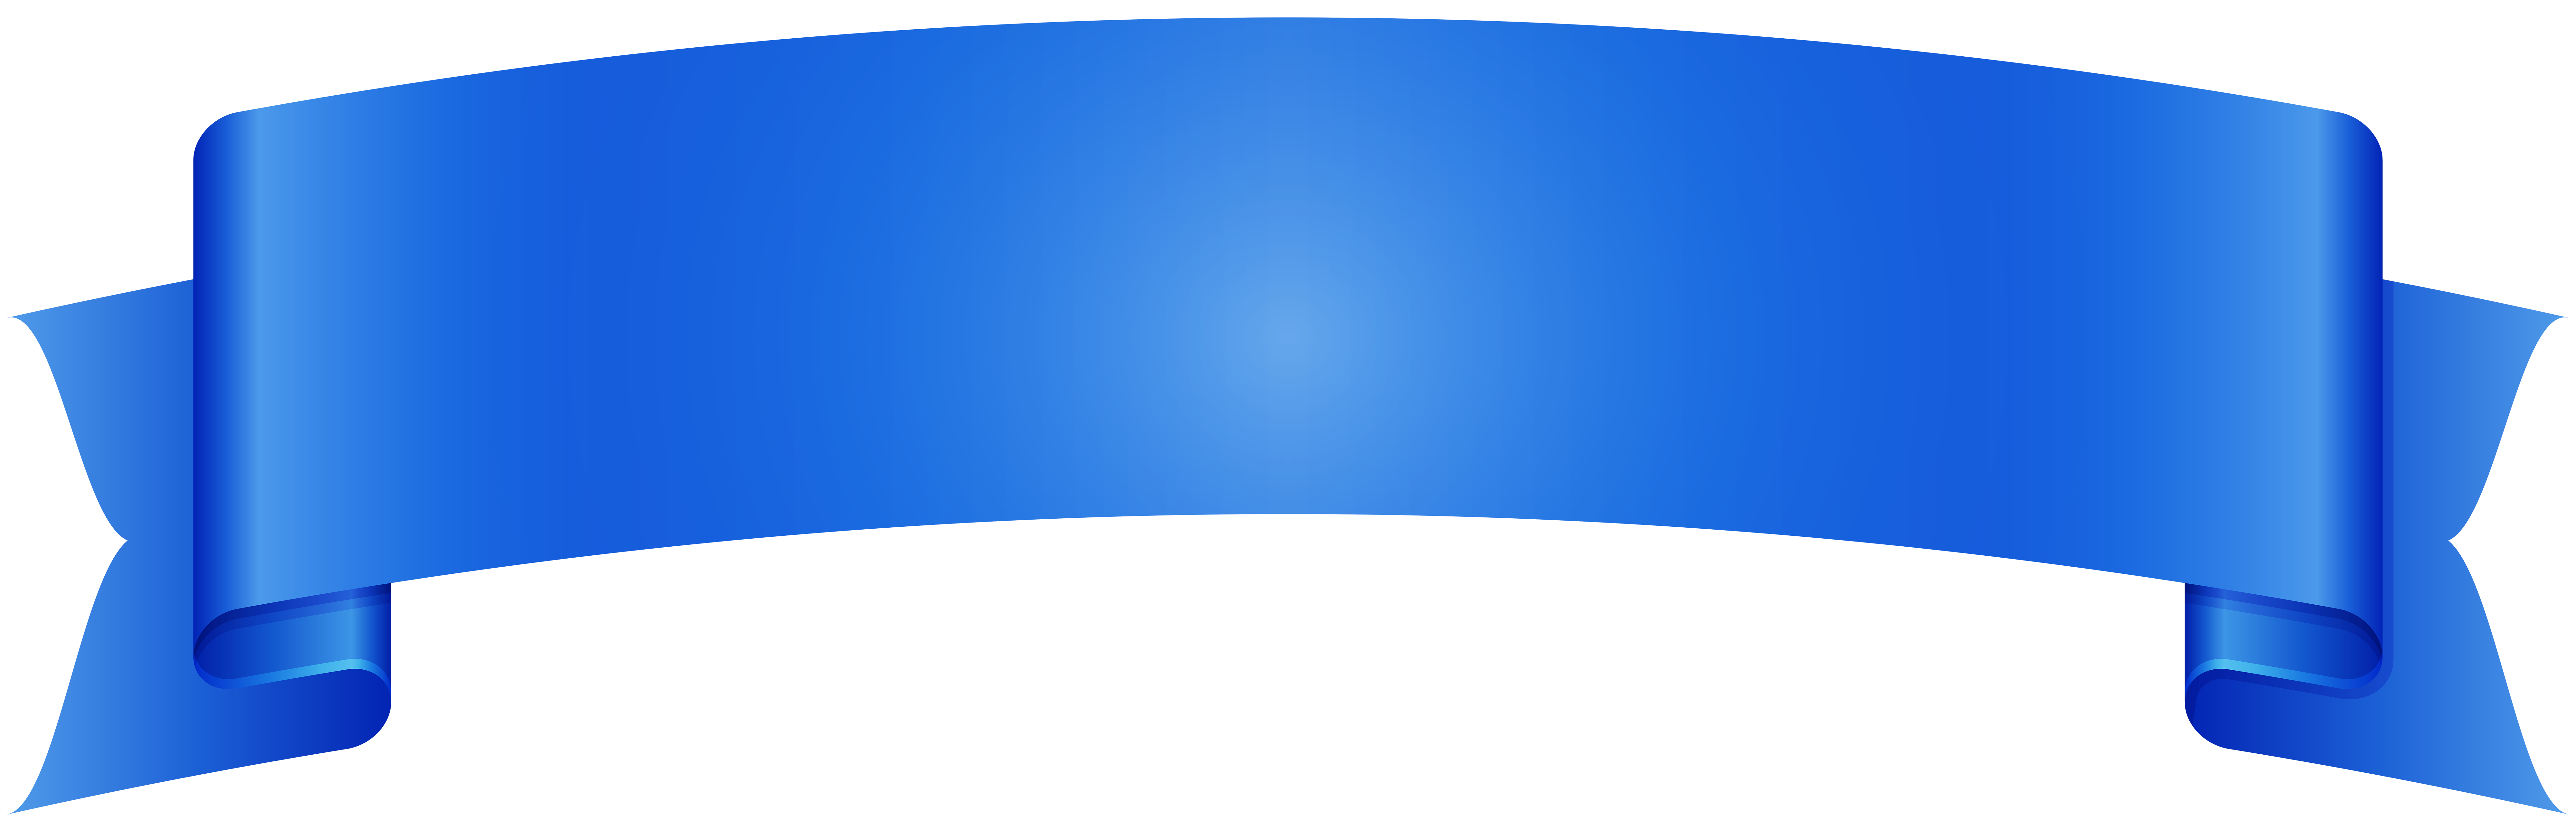 Transparent png image gallery. Blue clipart banner